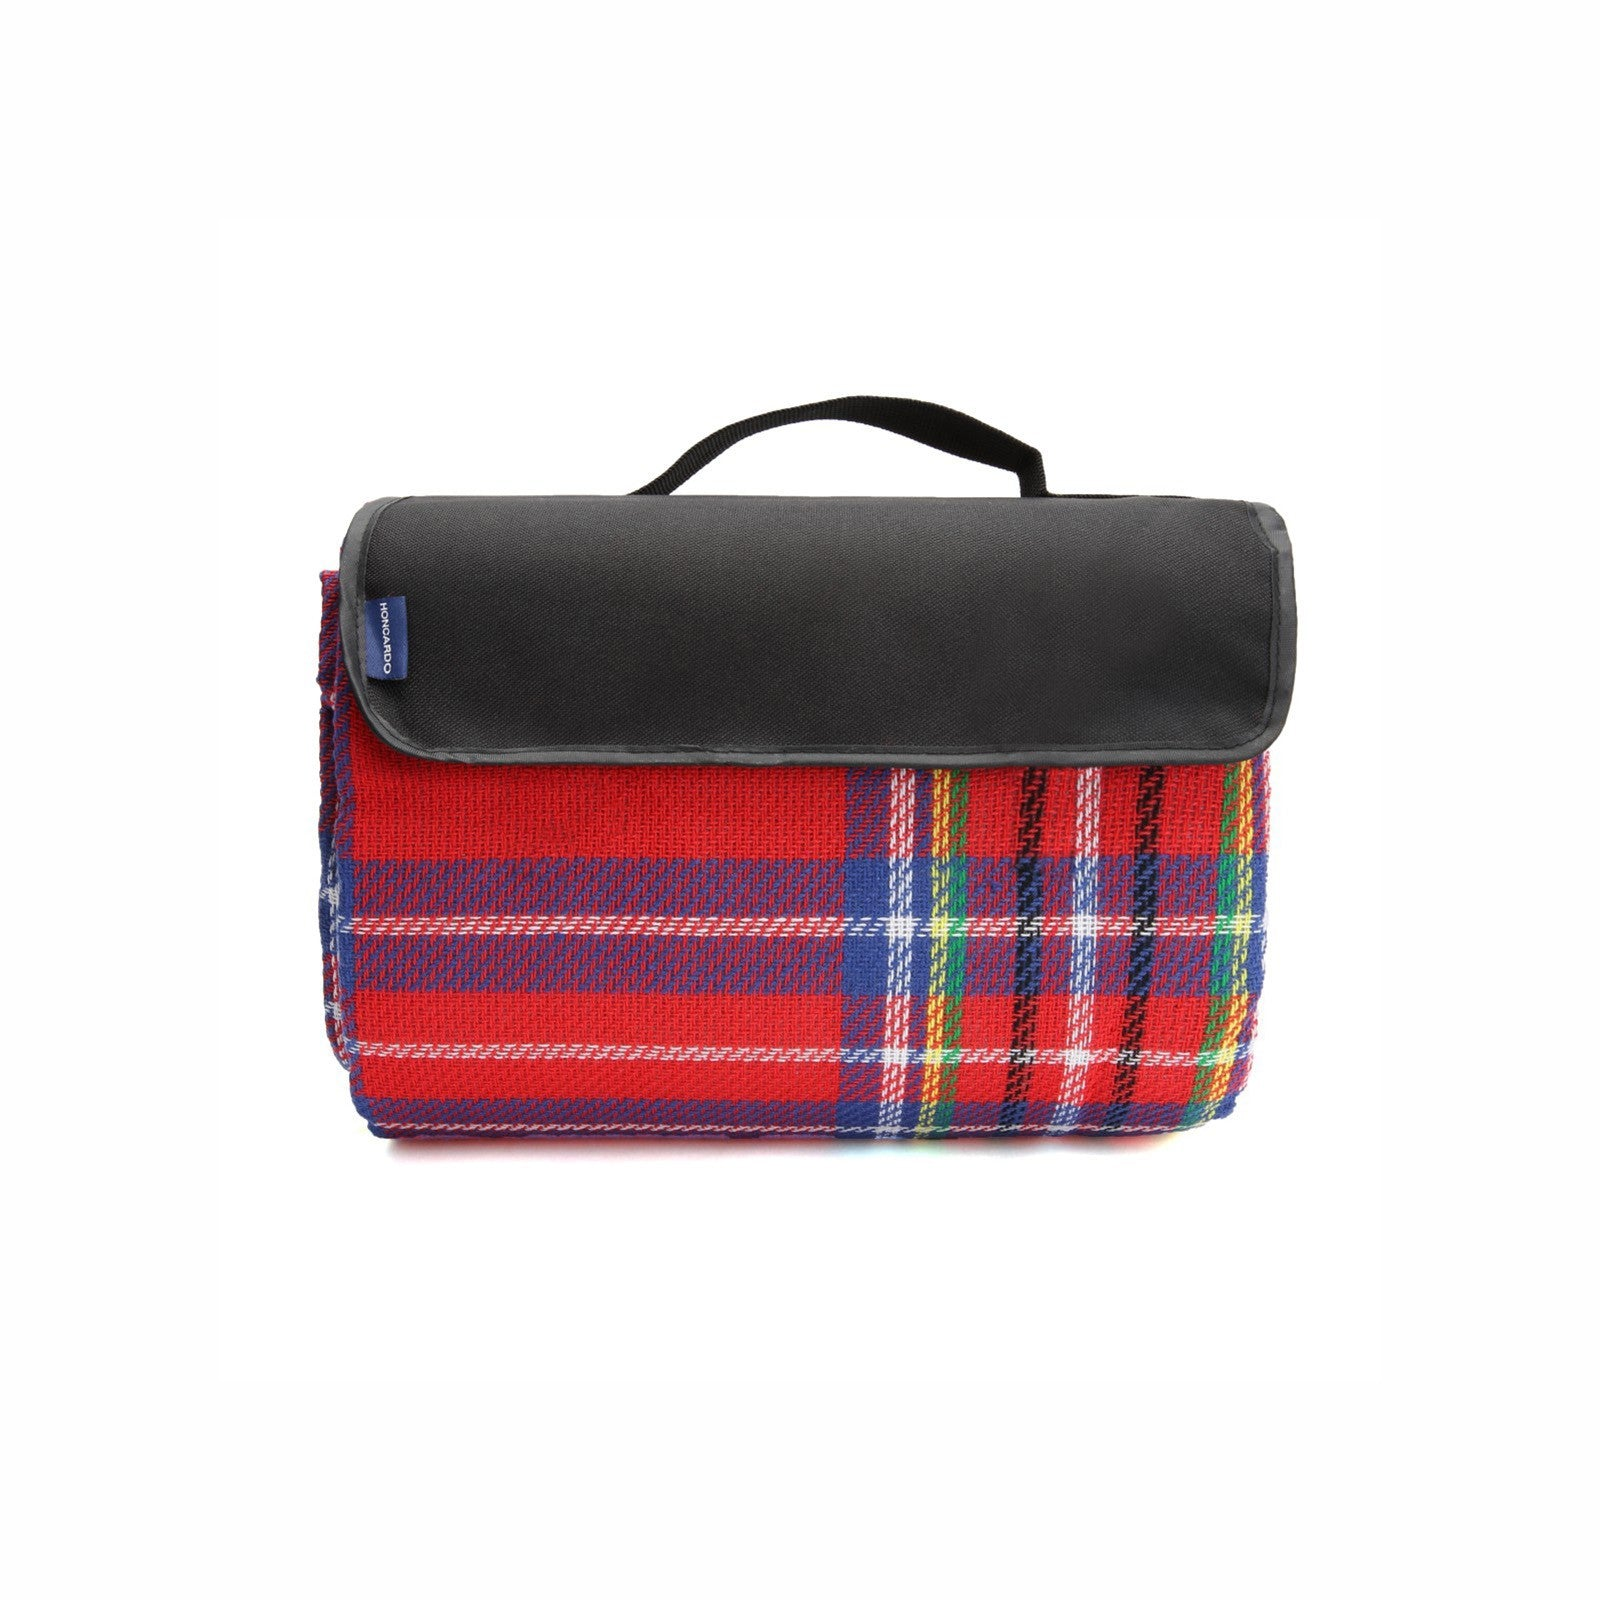 Portable Picnic Blanket Handy Mat with Handle